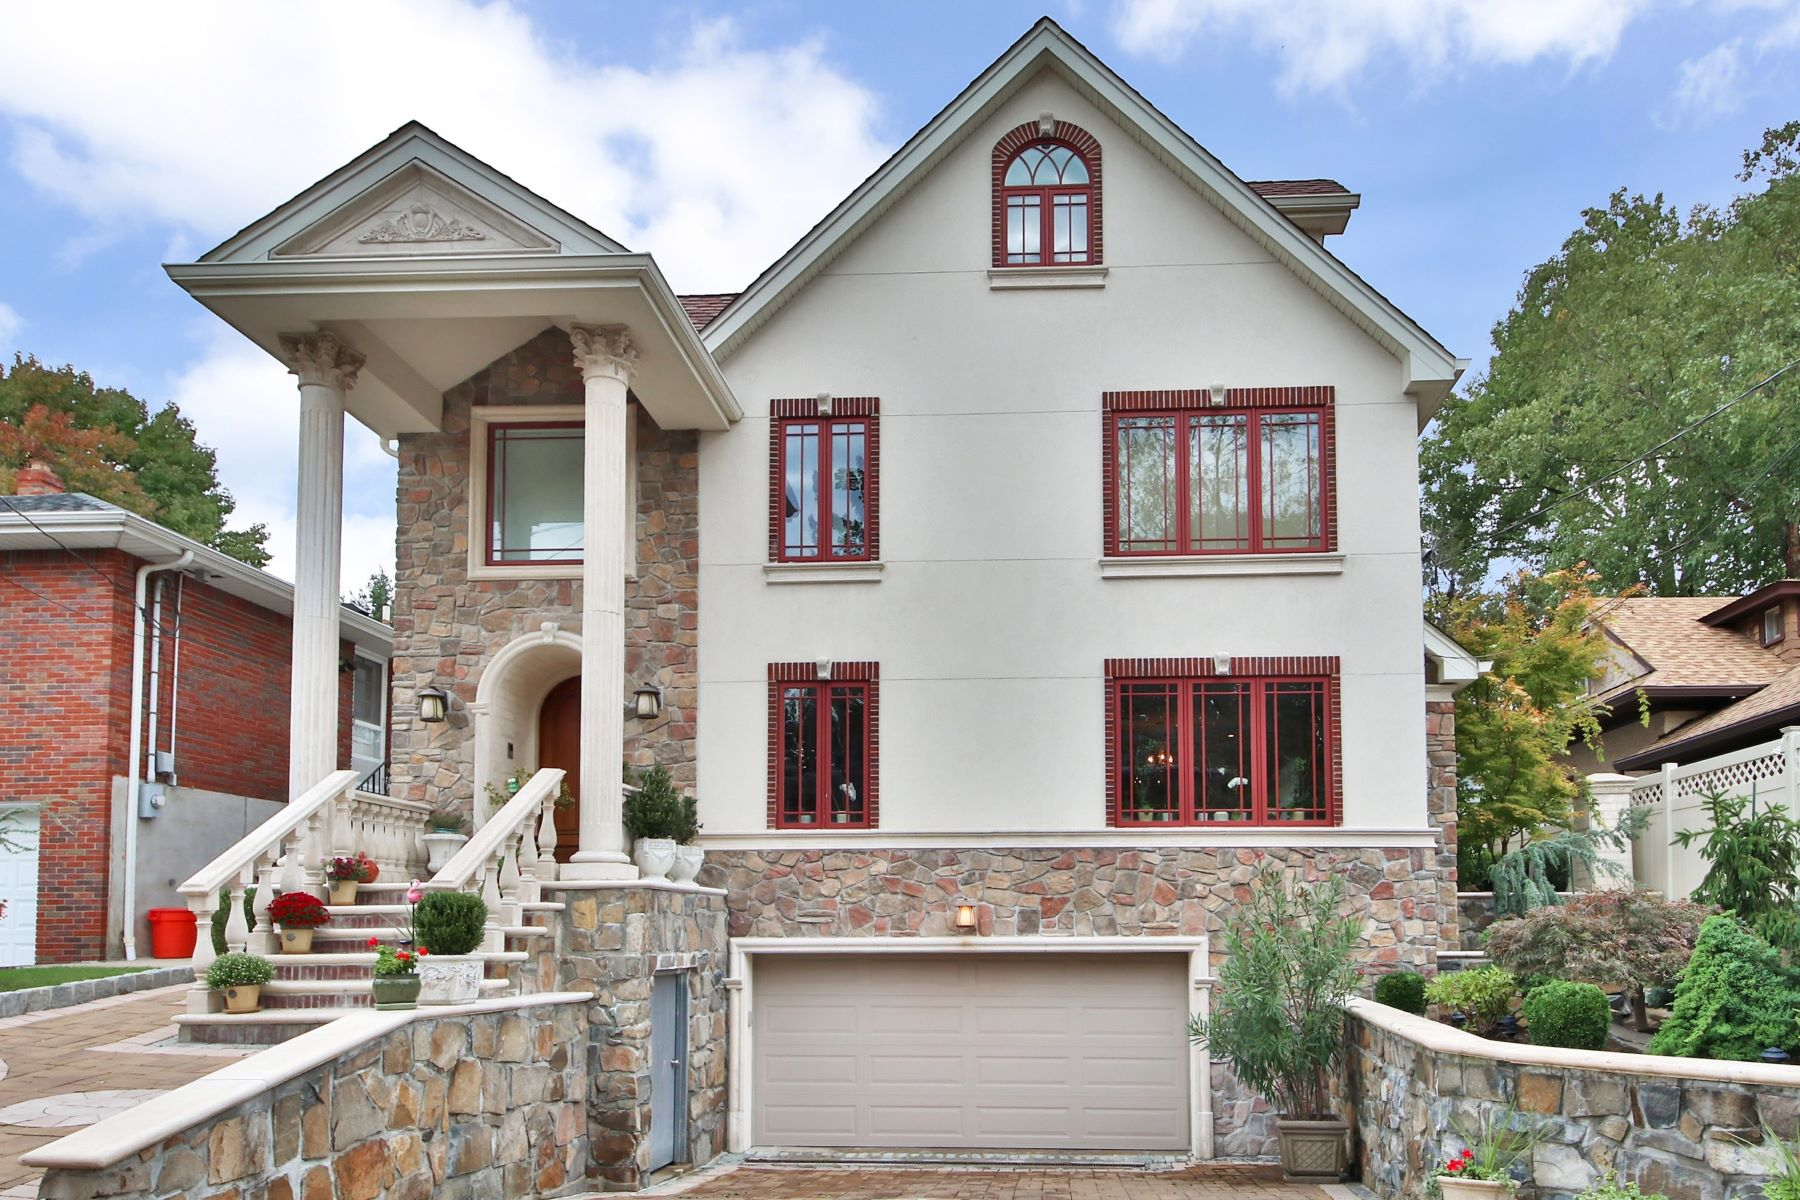 Single Family Home for Sale at Fabulous Location 19 Oakdene Ave, Cliffside Park, New Jersey 07010 United States